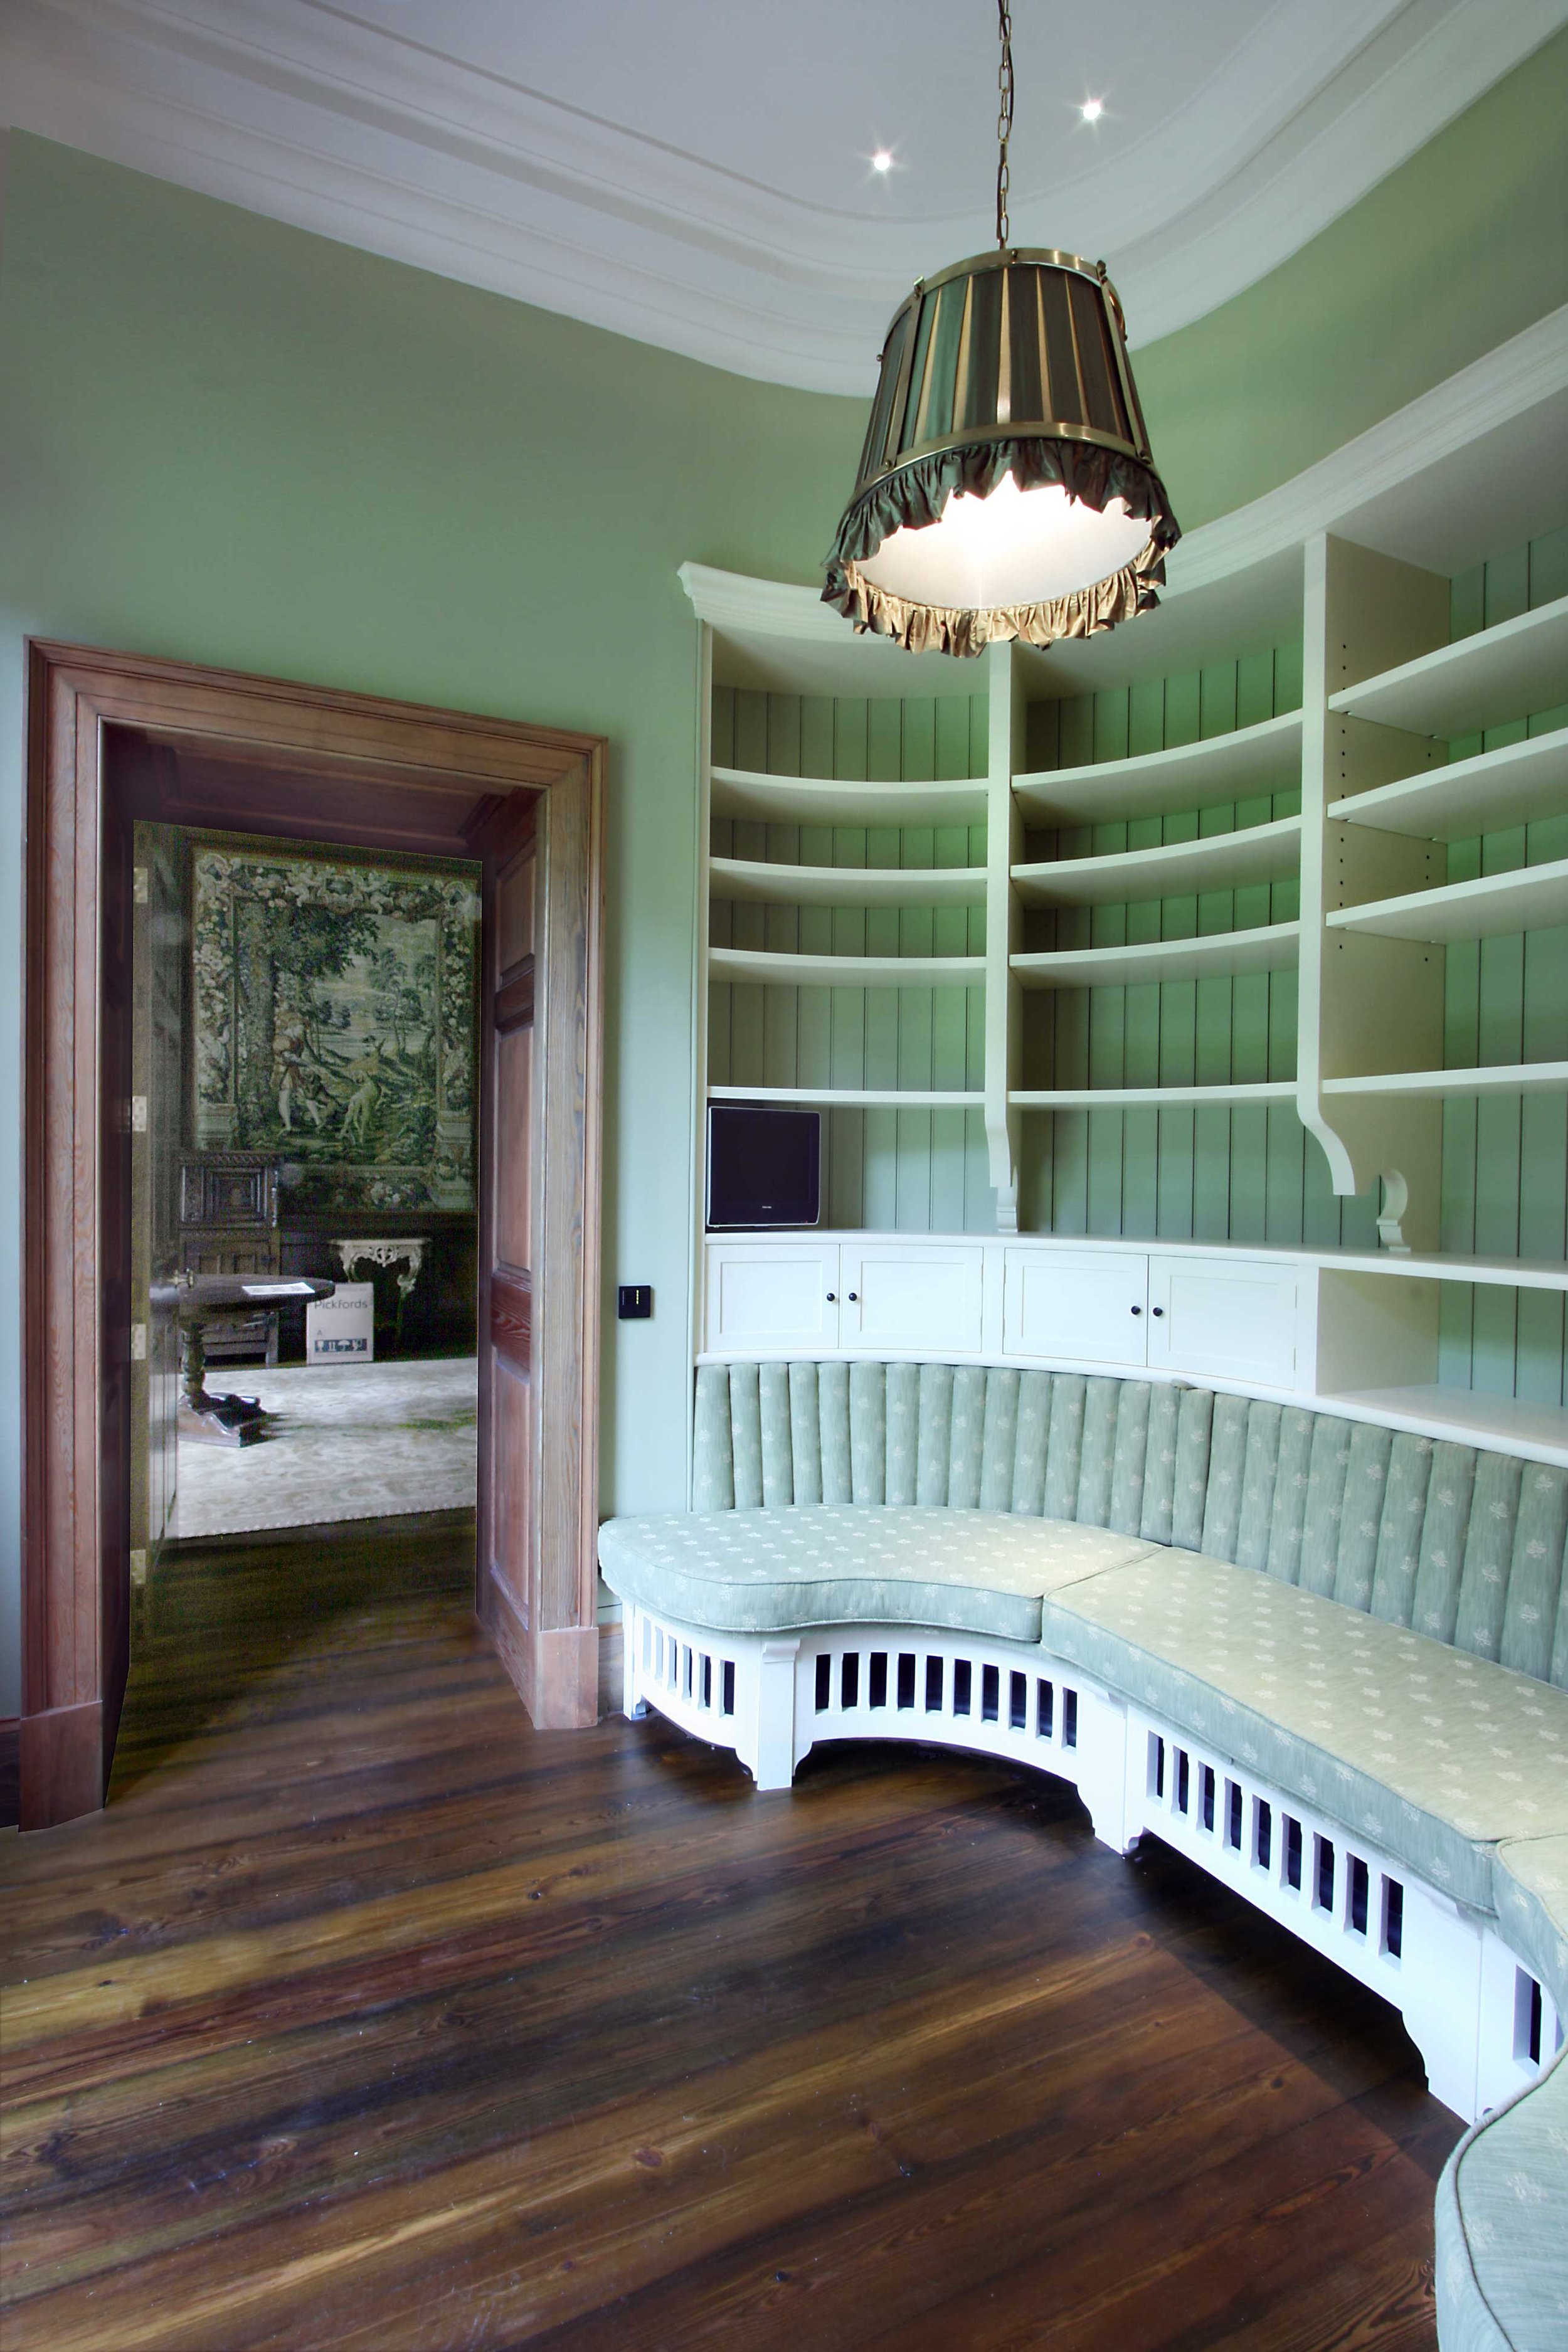 Bespoke seating and shelving unit, Eilean Aigas House.